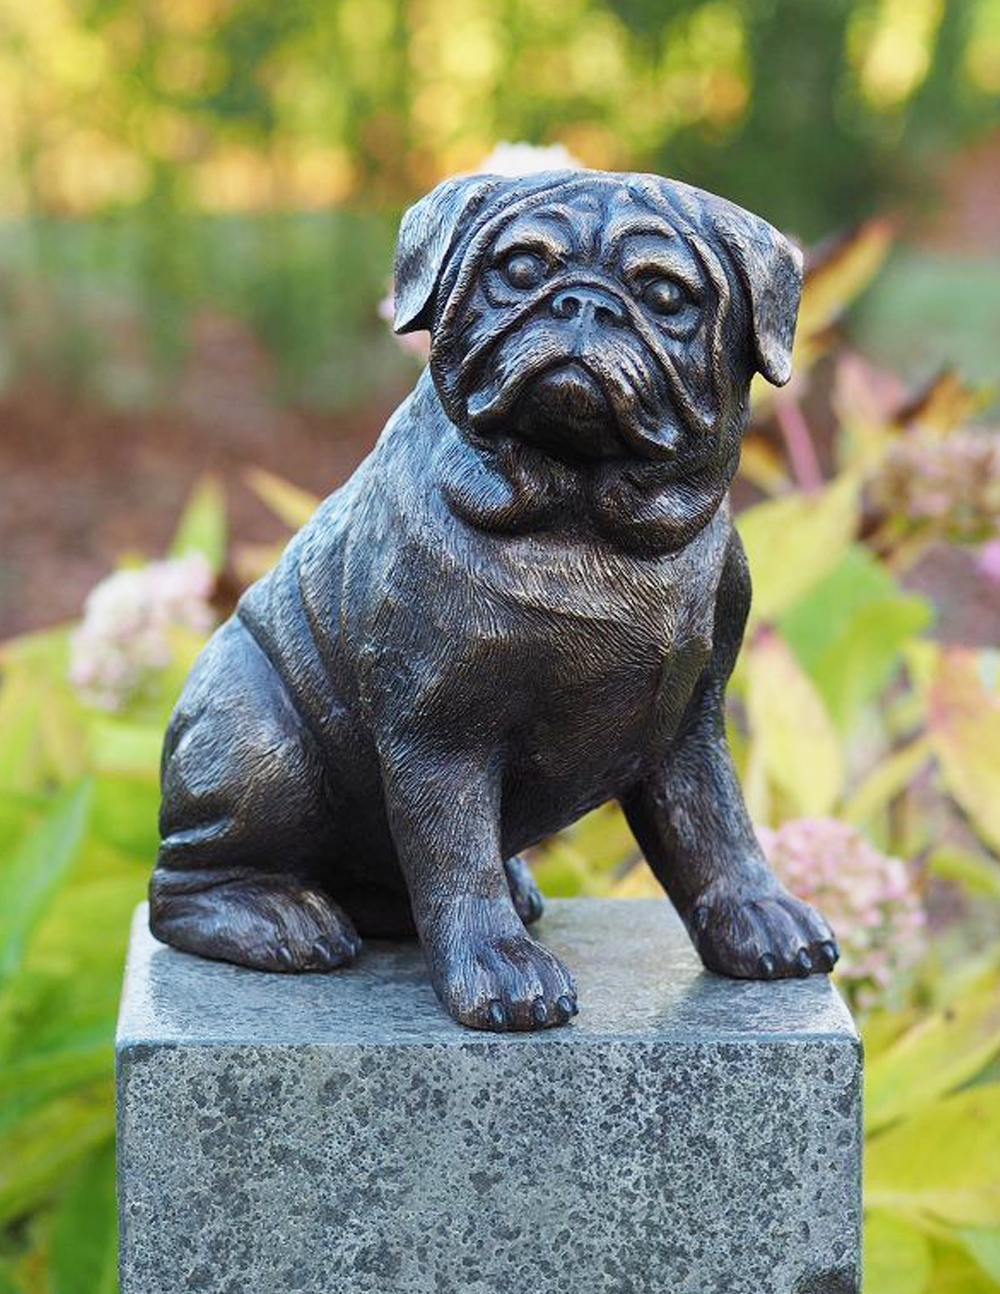 Pug dog sculpture Christmas gift